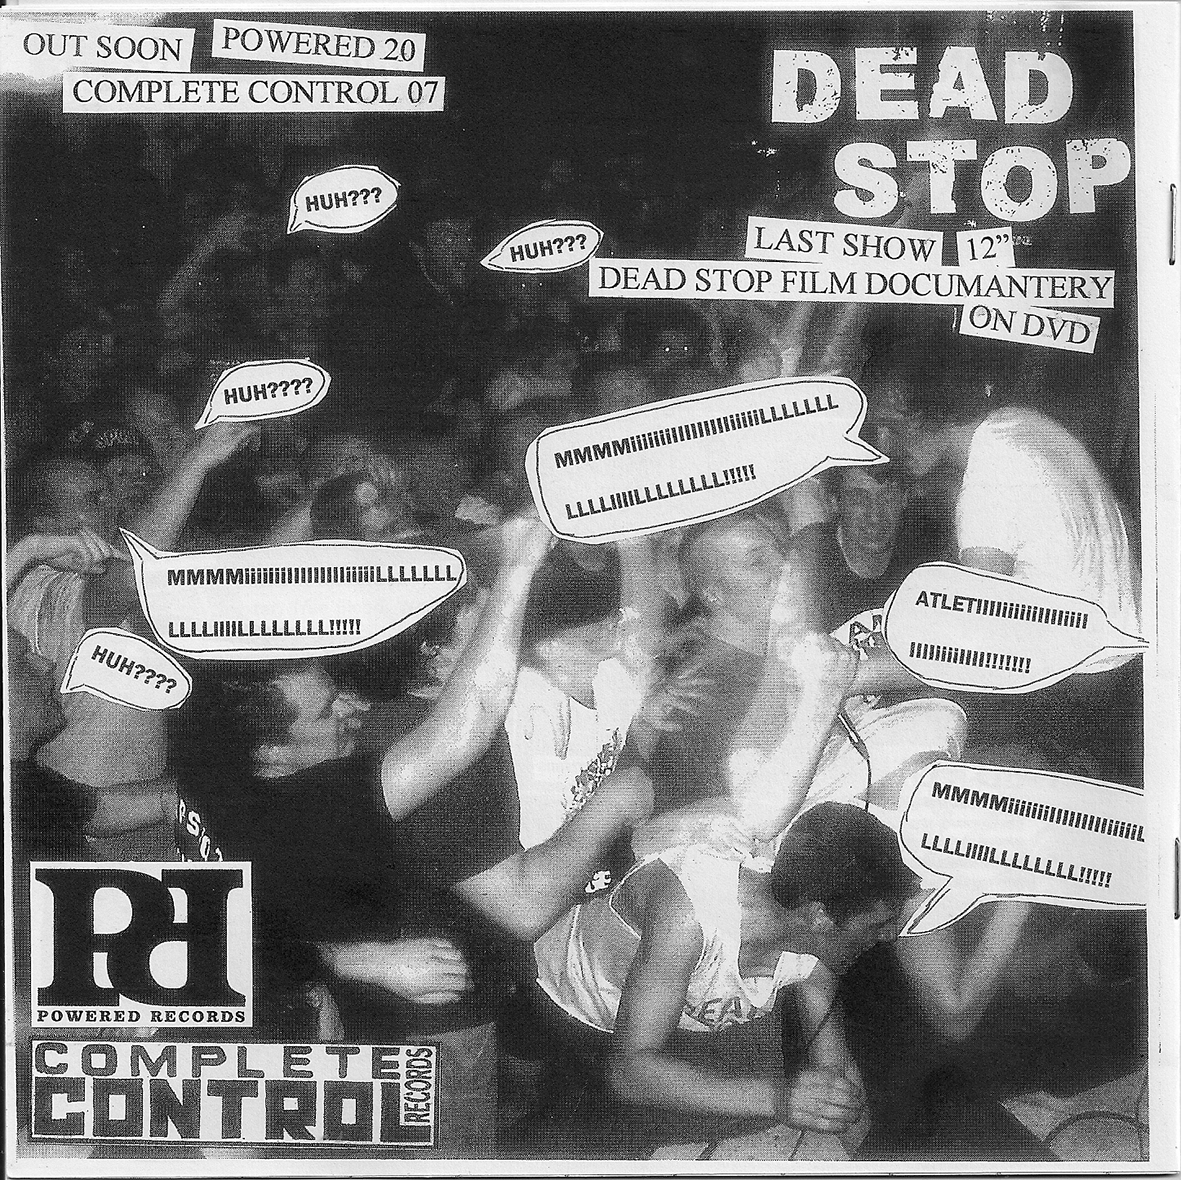 Dead Stop Last Show LP and documentary ad